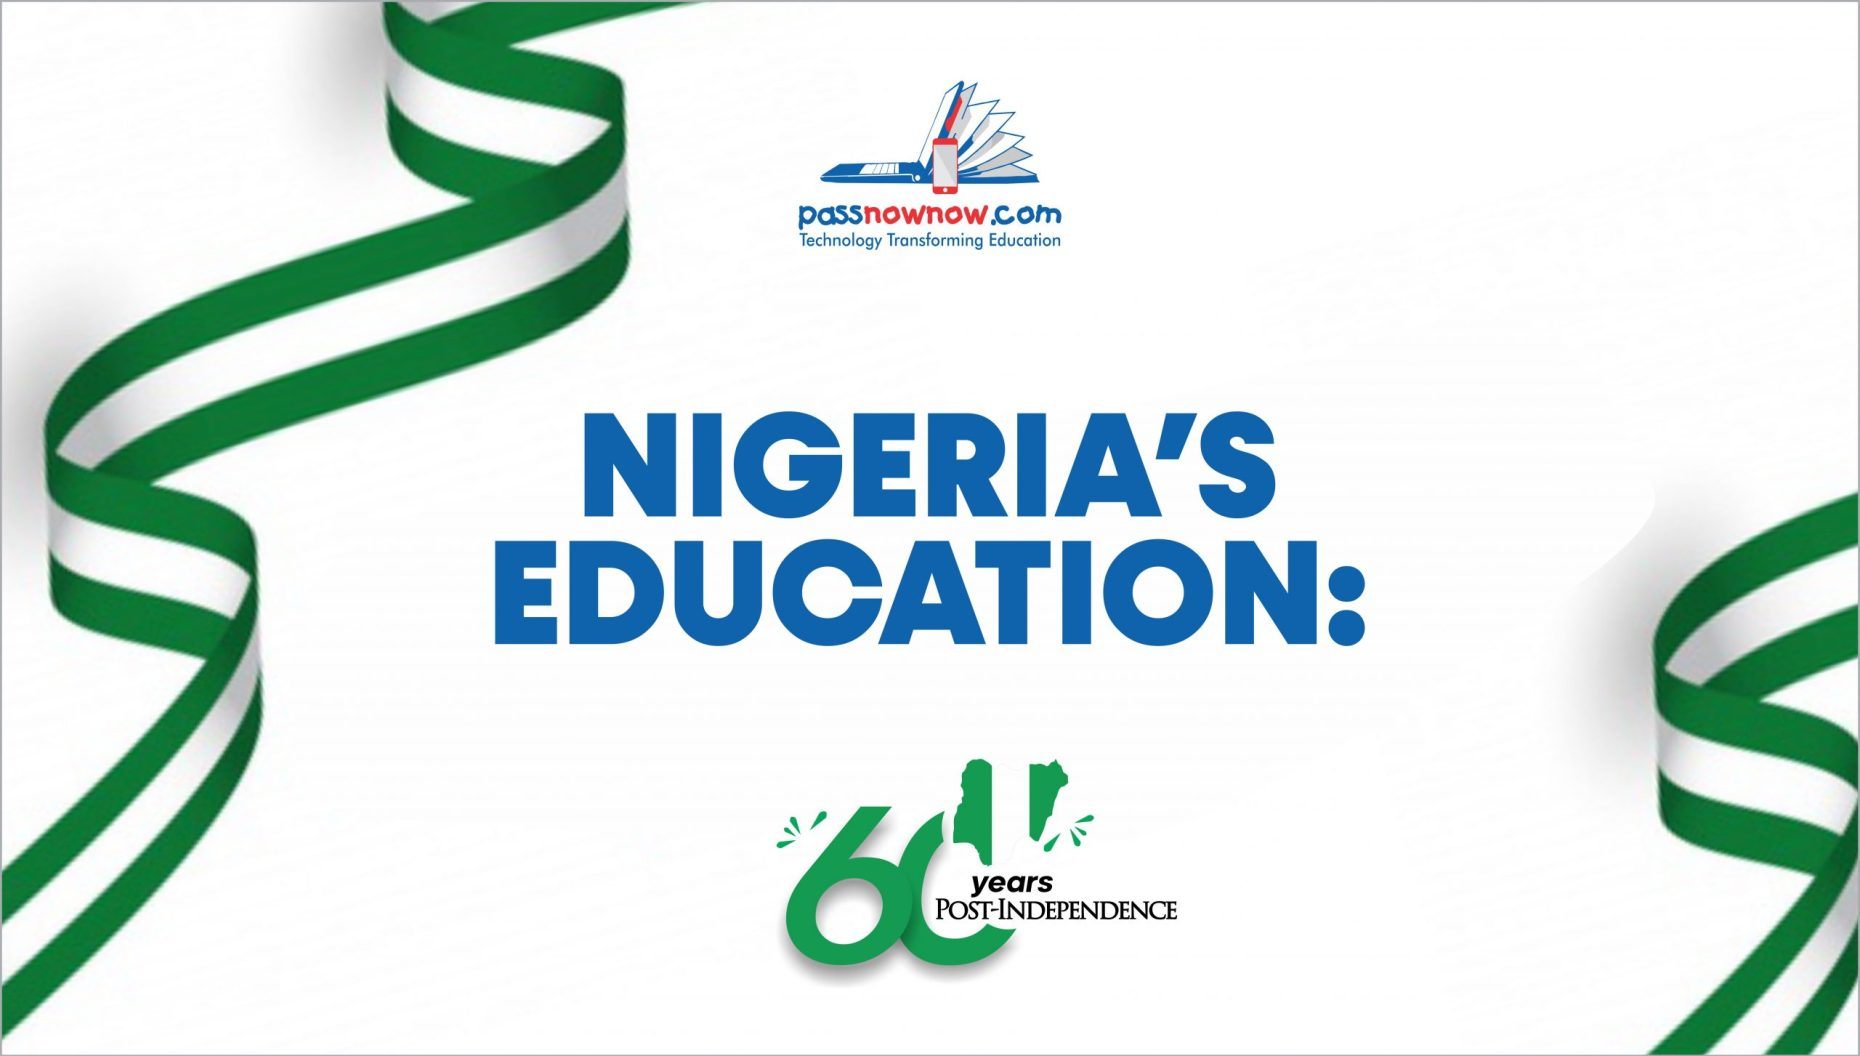 Nigeria Education: 60 years Post Independence